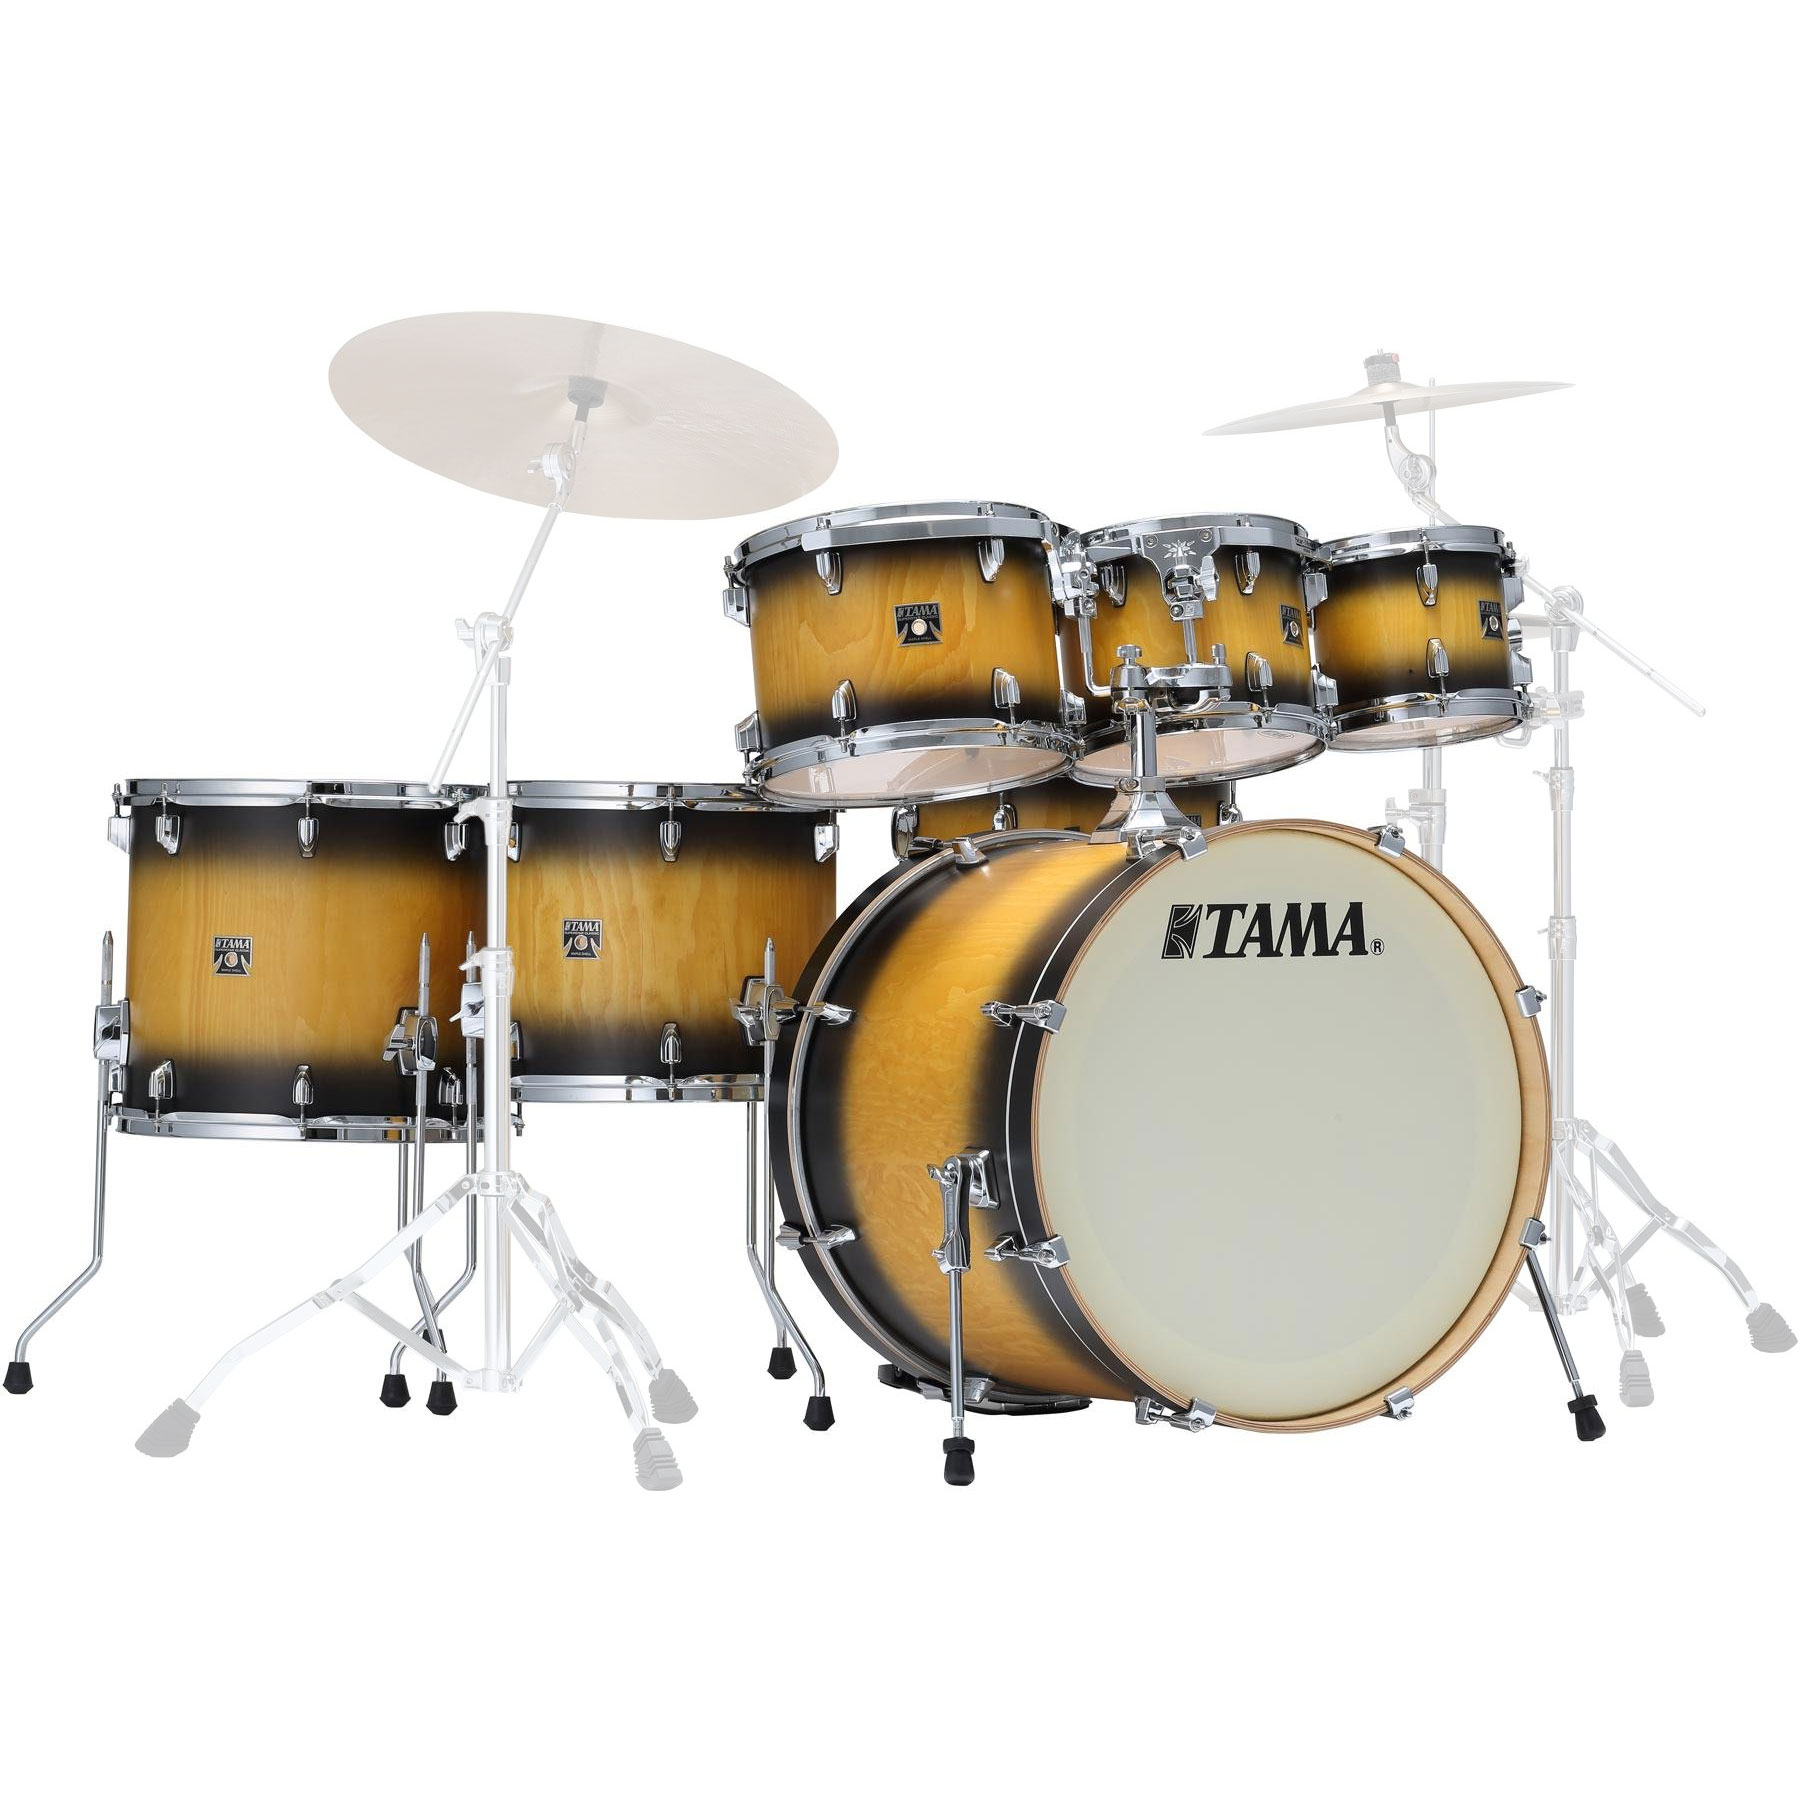 "Tama Superstar Classic Exotix 7-Piece Drum Set Shell Pack (22"" Bass, 8/10/12/14/16"" Toms, 14"" Snare)"